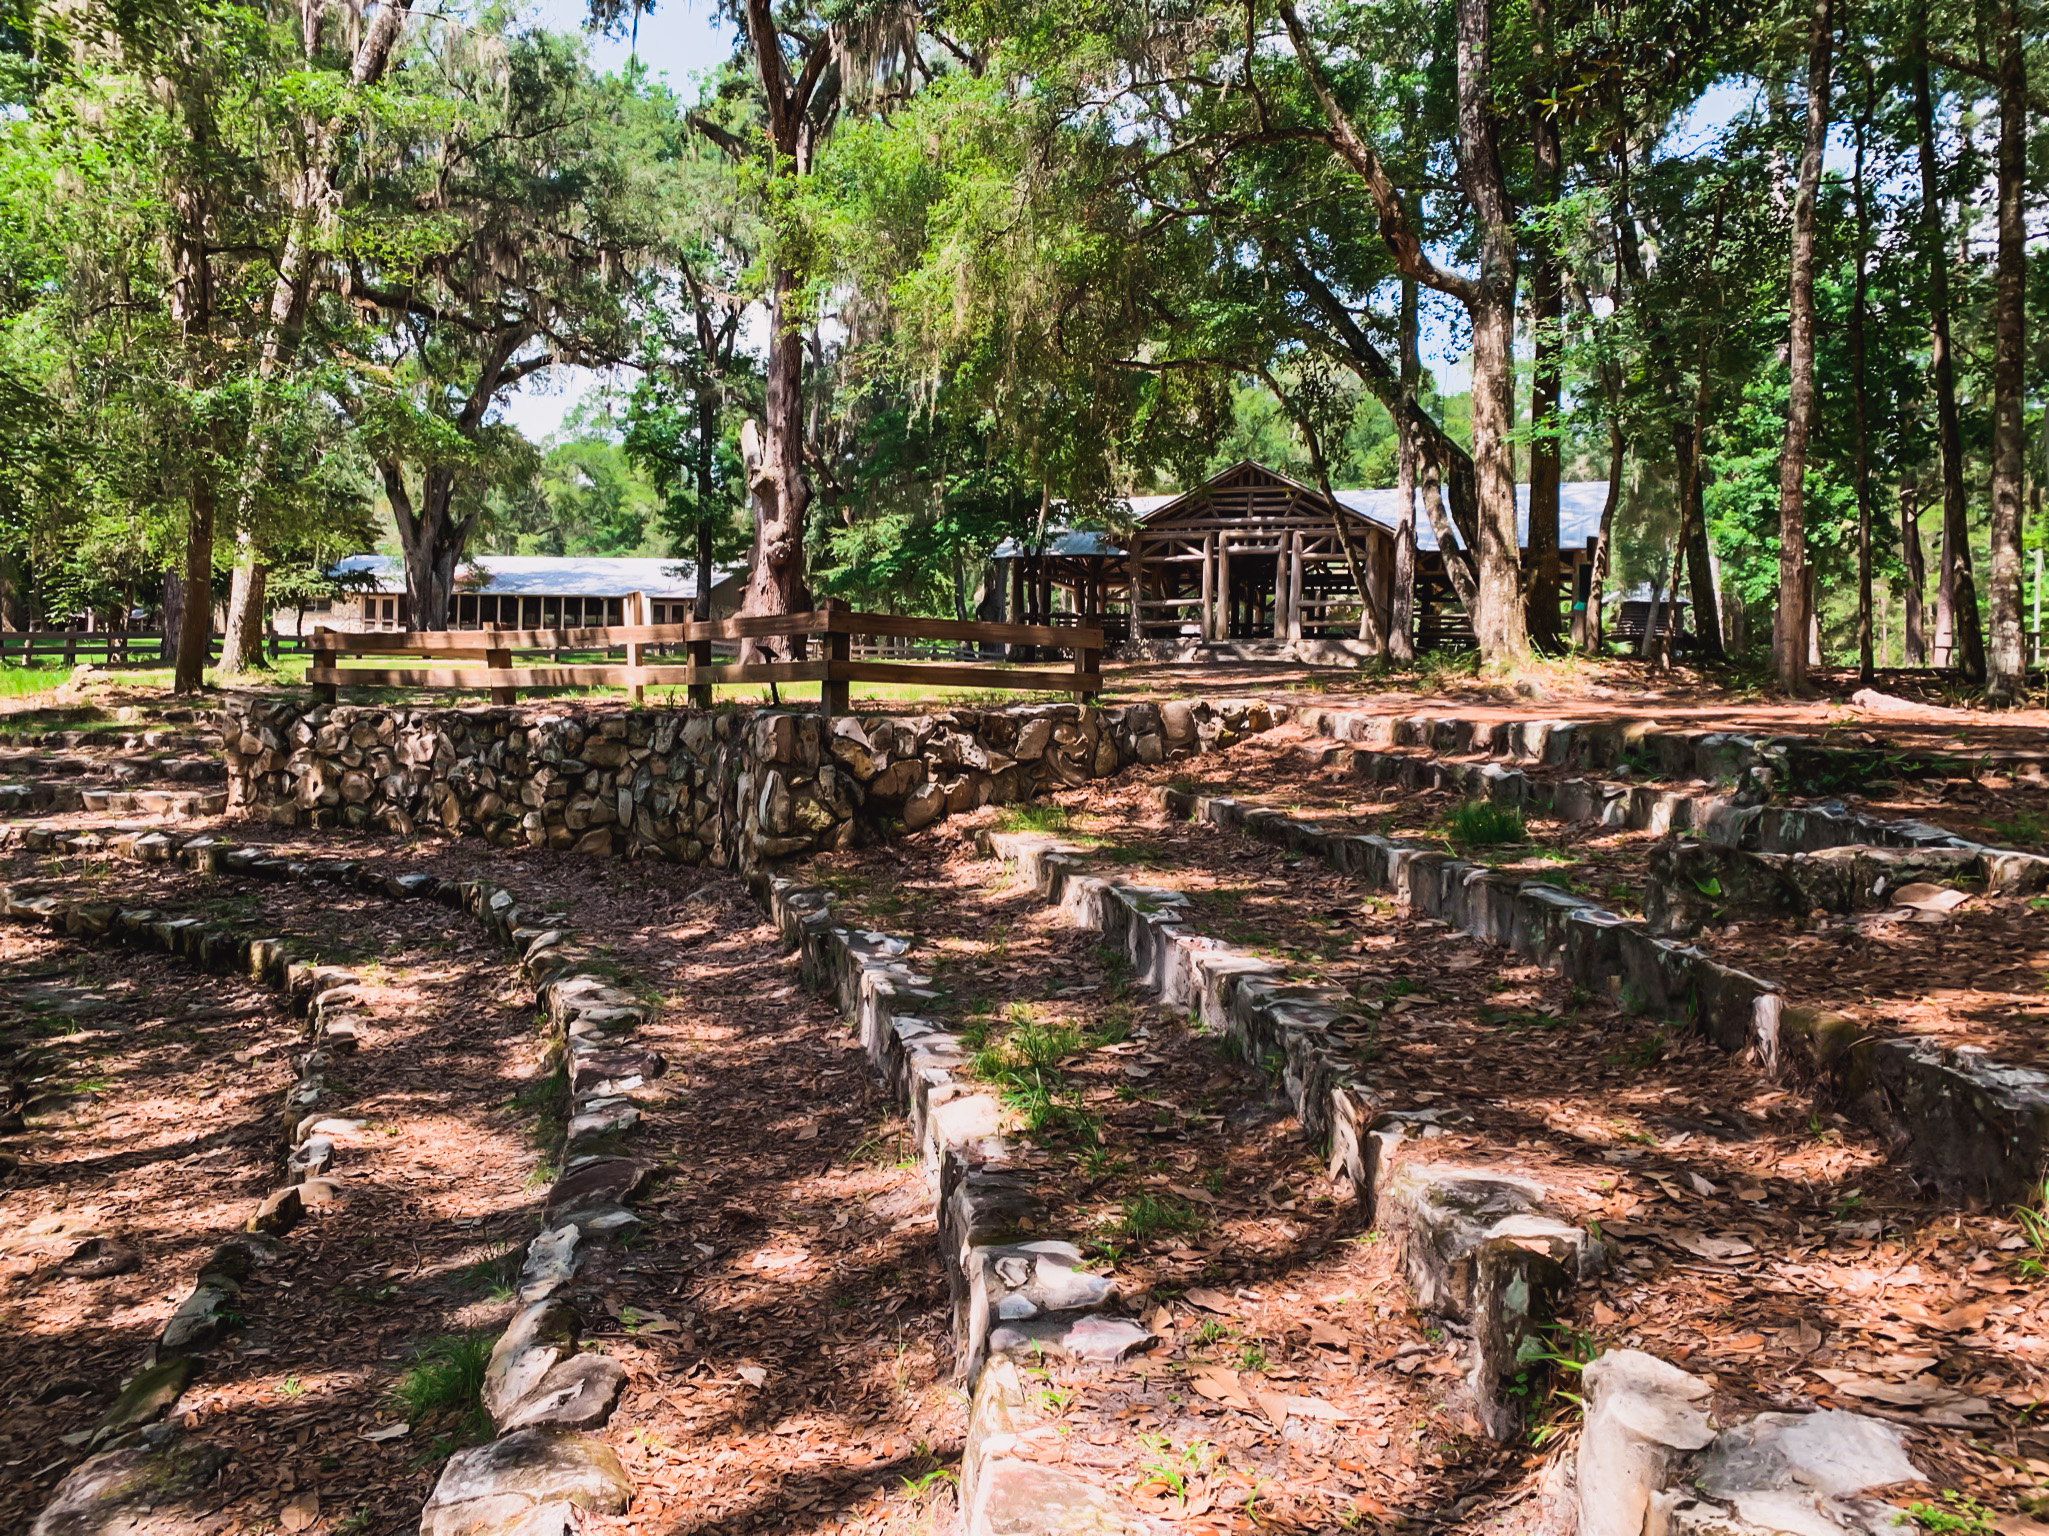 historic site in high springs outdoorsy vibes in O'leno state park